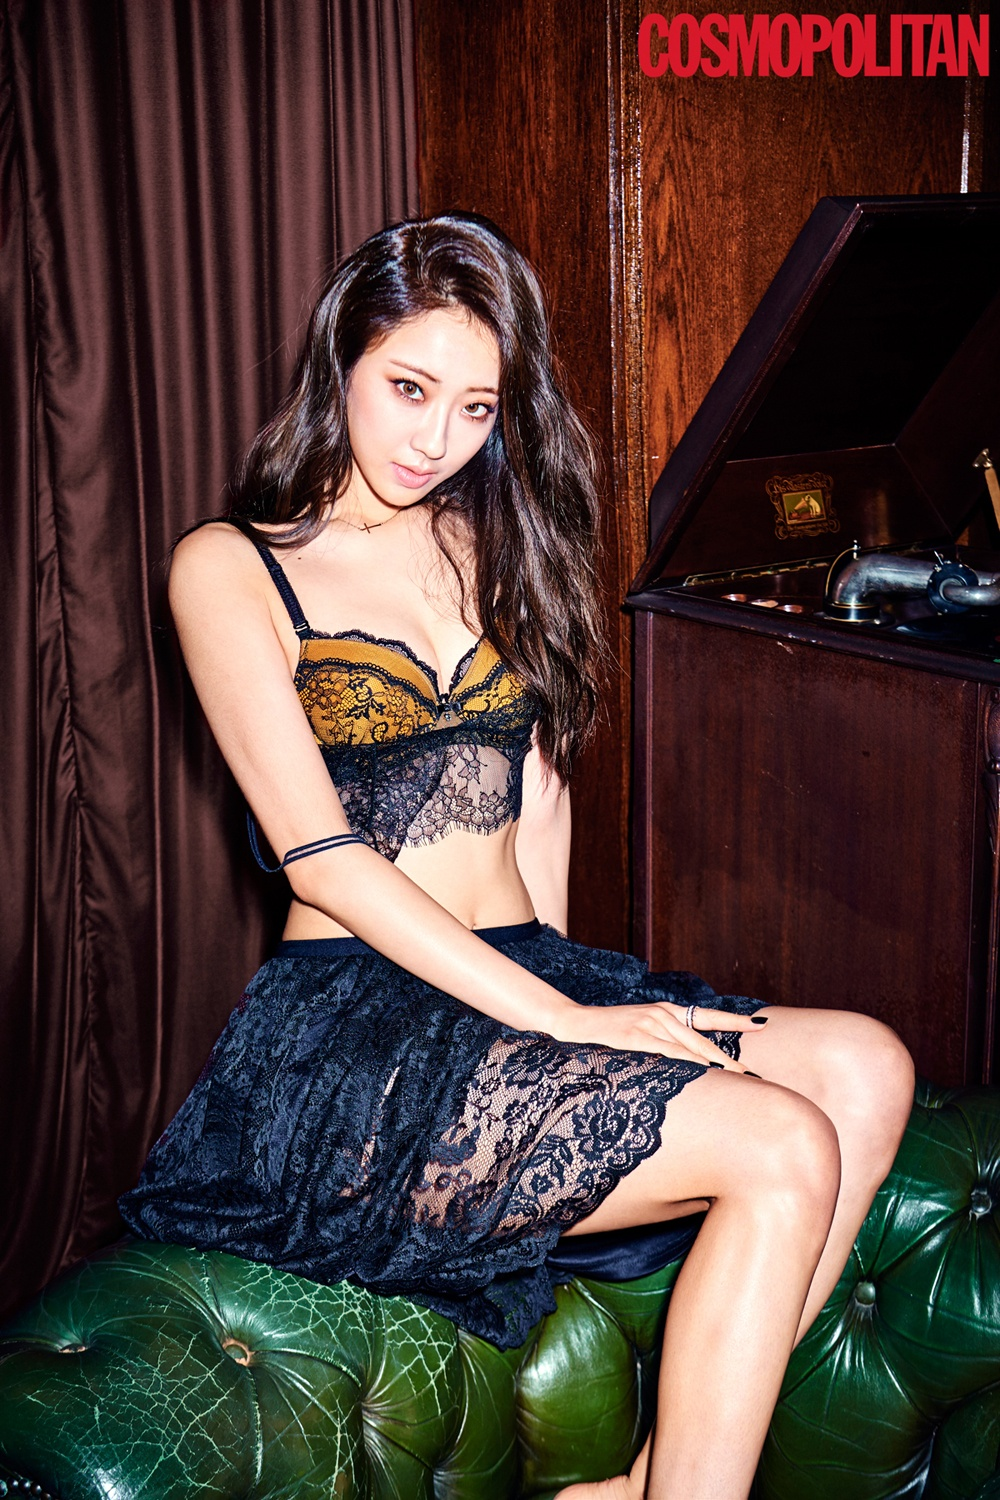 Kyungri on November's issue of COSMOPOLITAN.